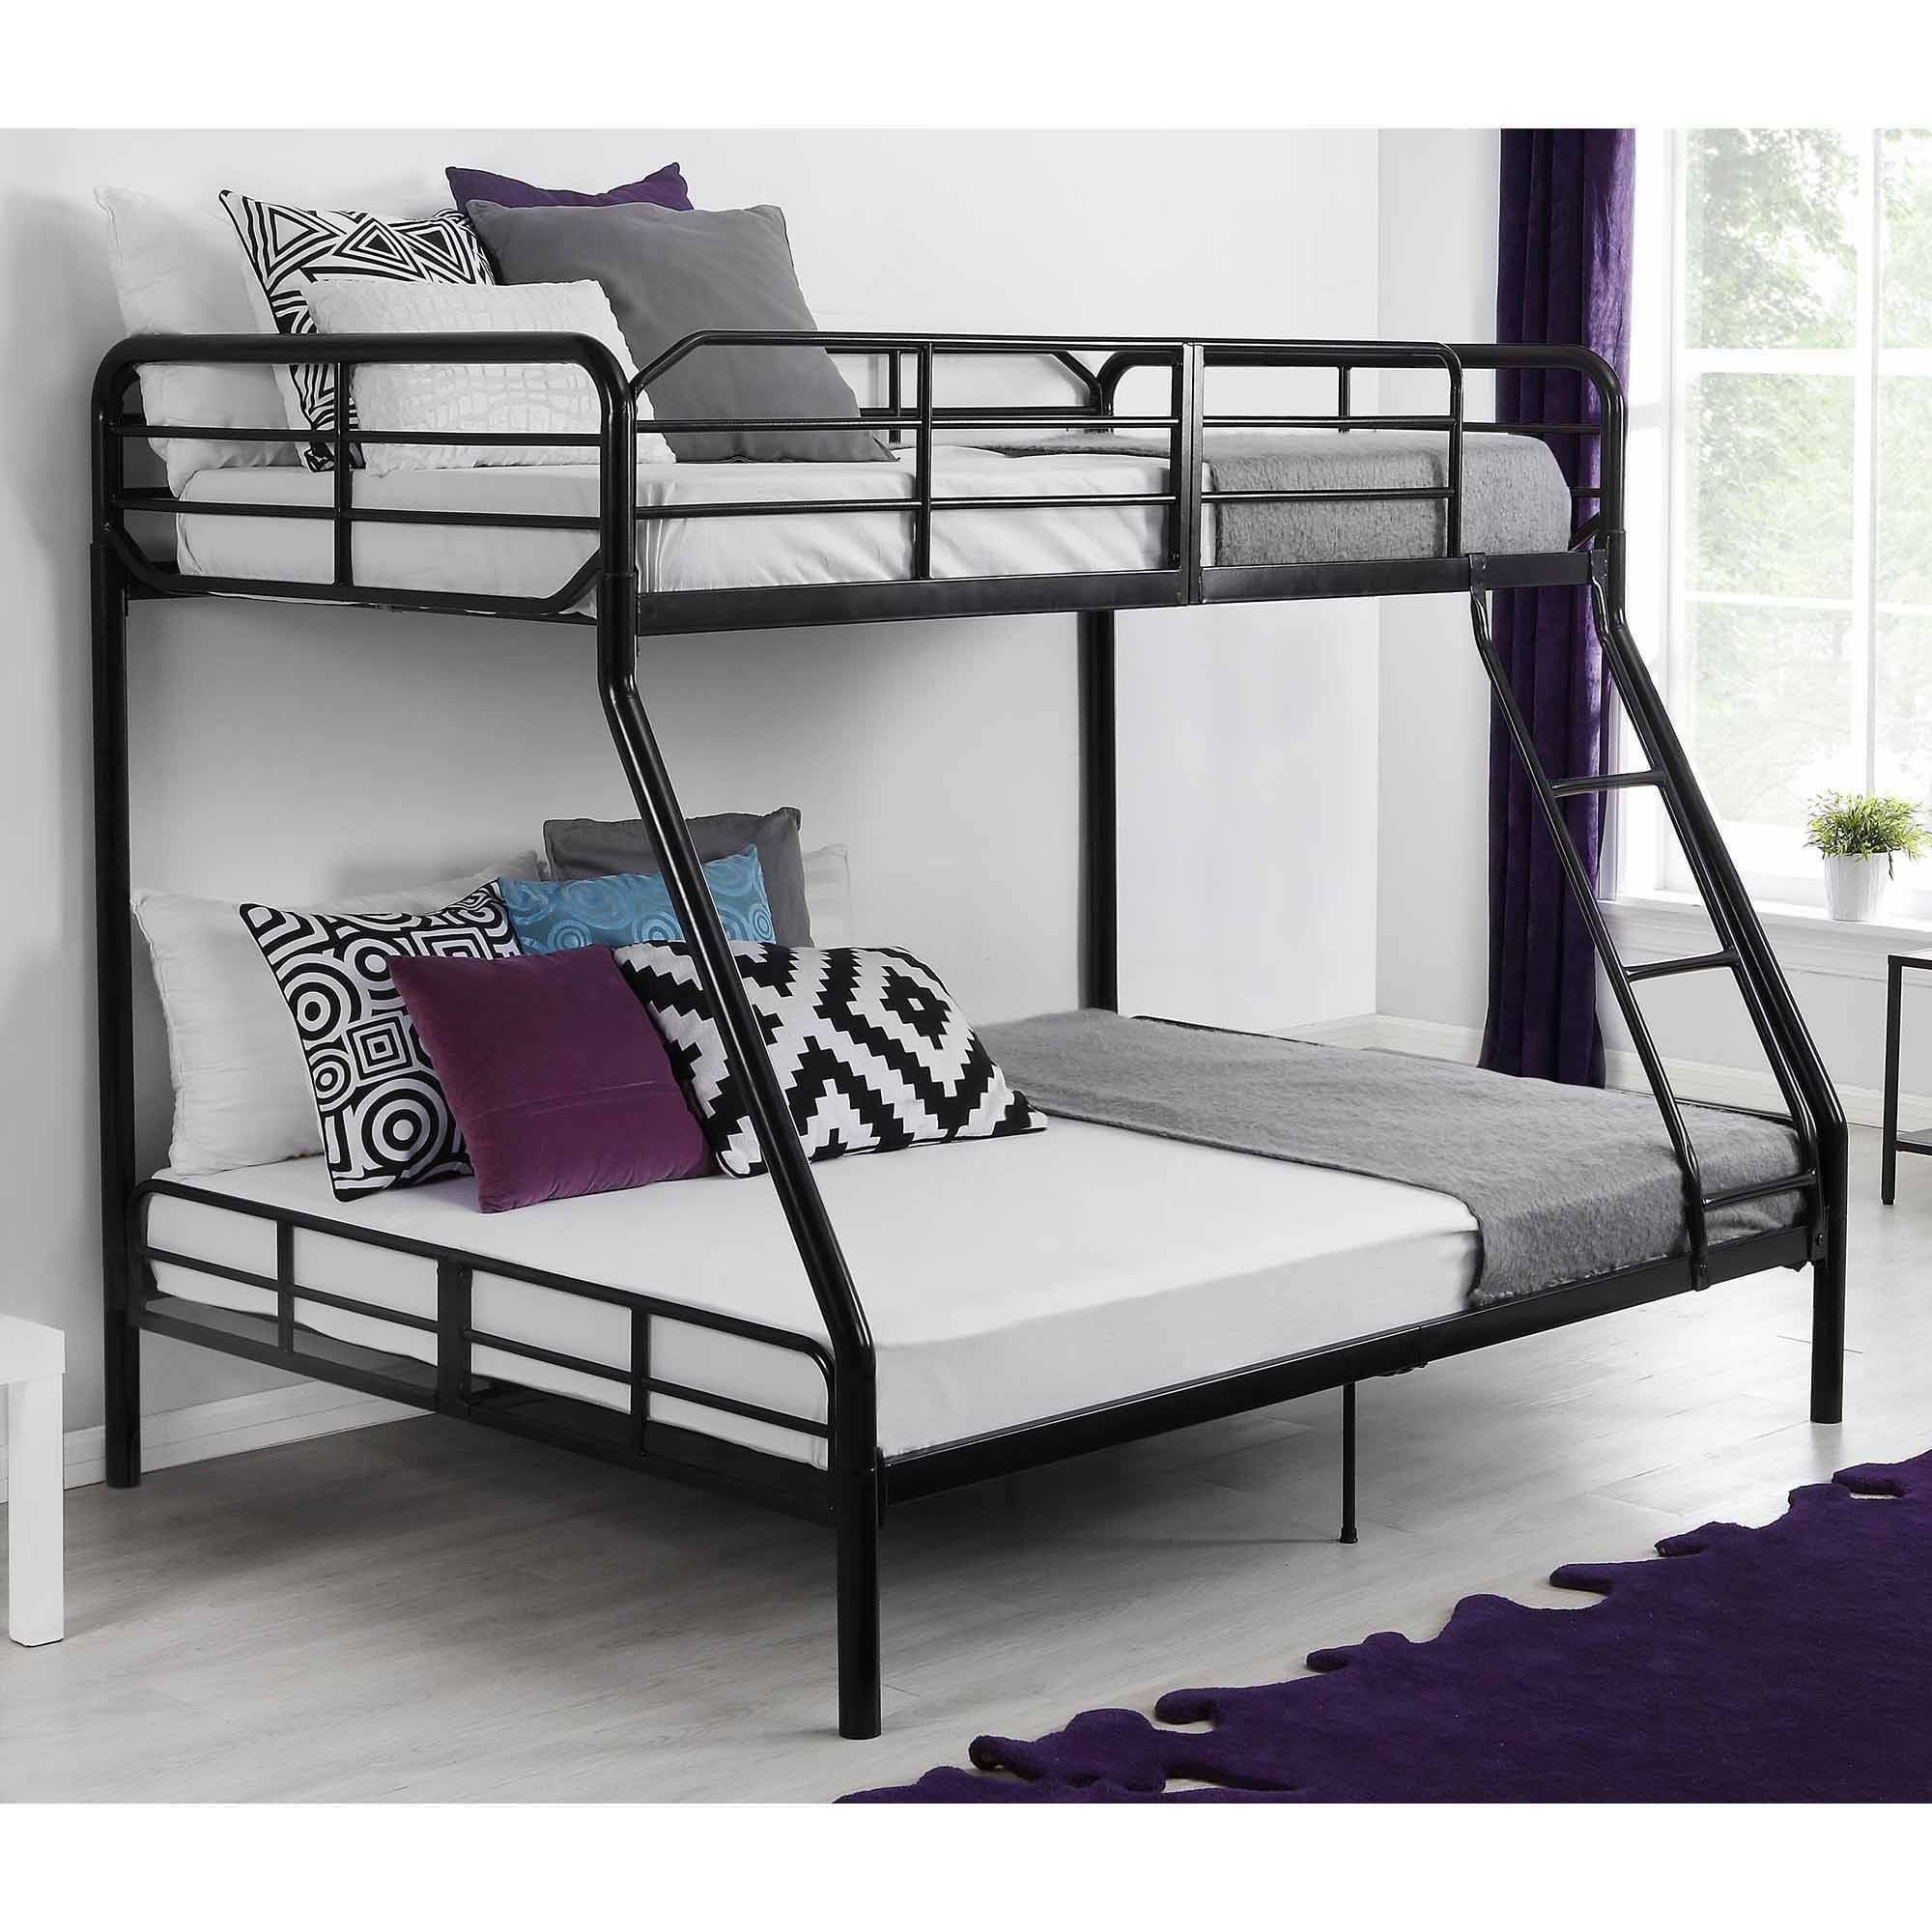 Mainstays Twin Over Full Metal Sturdy Bunk Bed, Black - Walmart